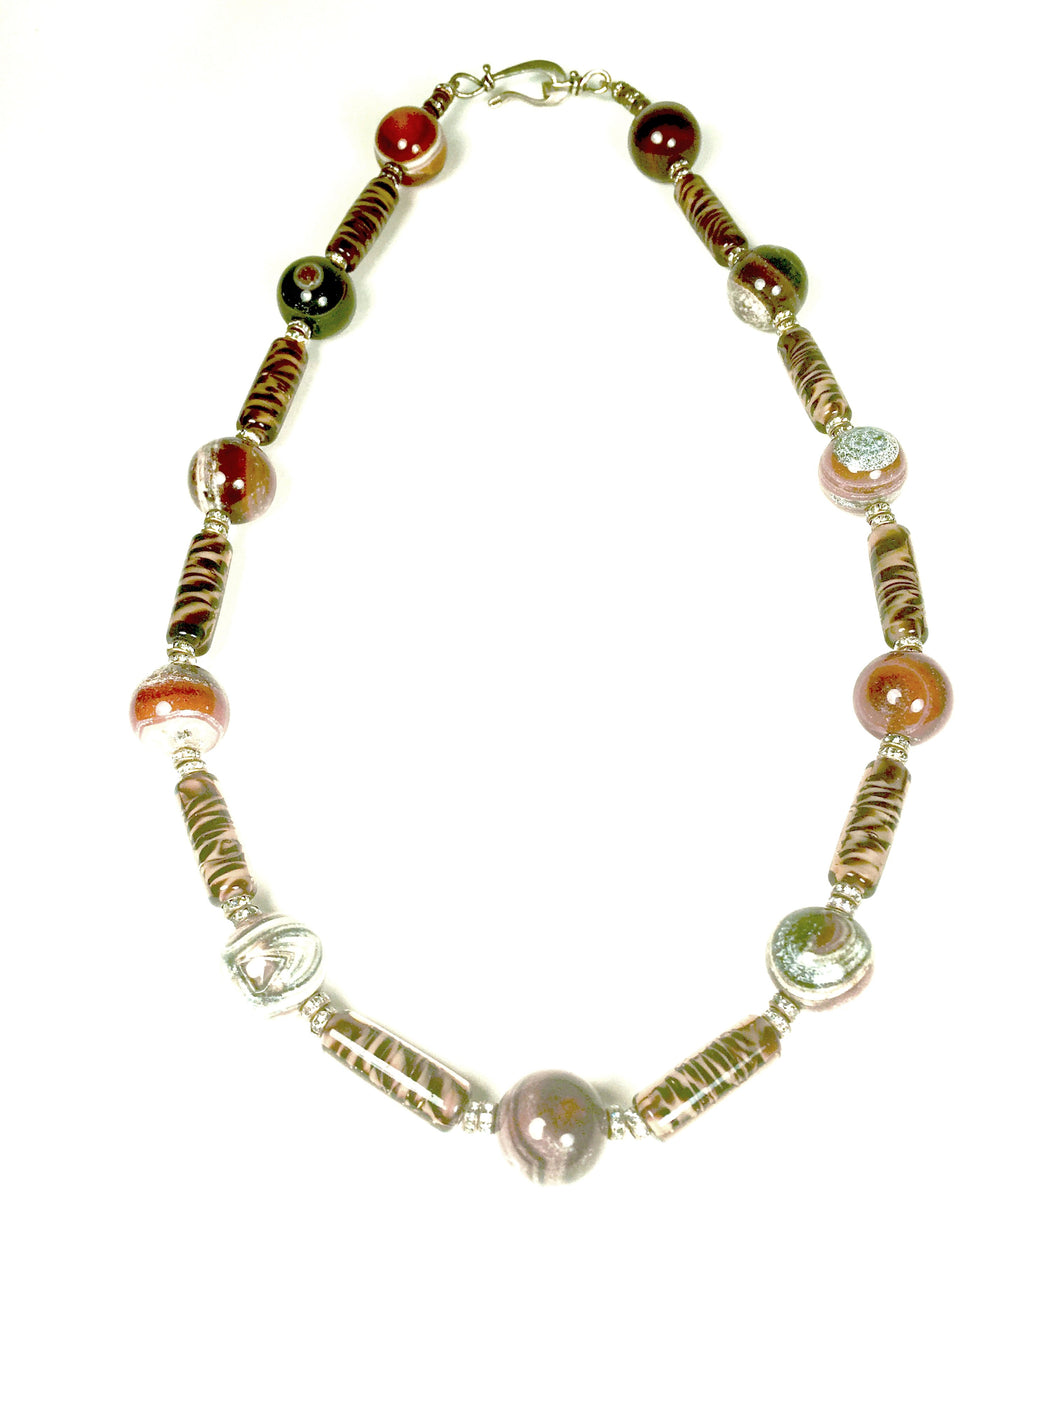 Landscape Agate, Handblown Zebra Glass Necklace